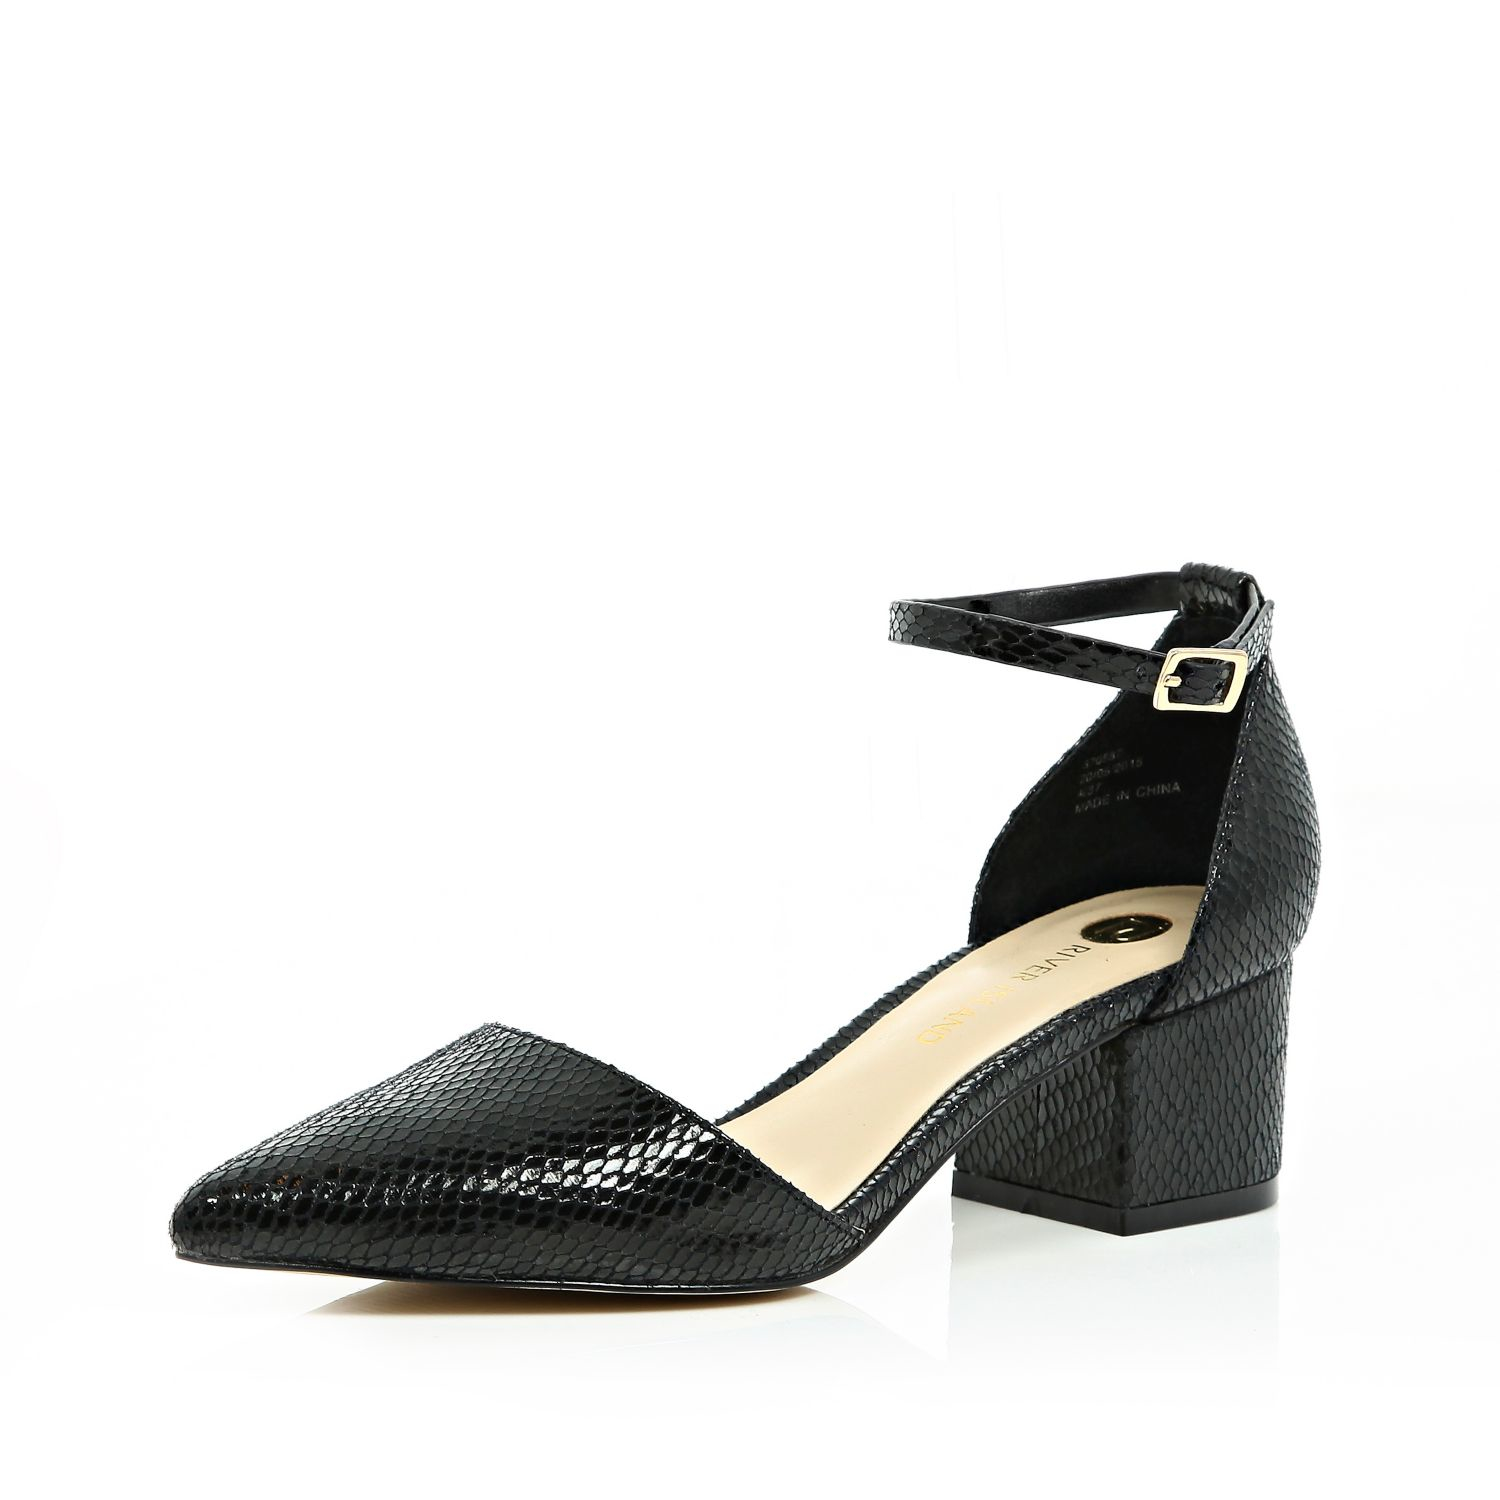 a5e575948e5 River Island Black Block Heel Pointed Shoes in Black - Lyst